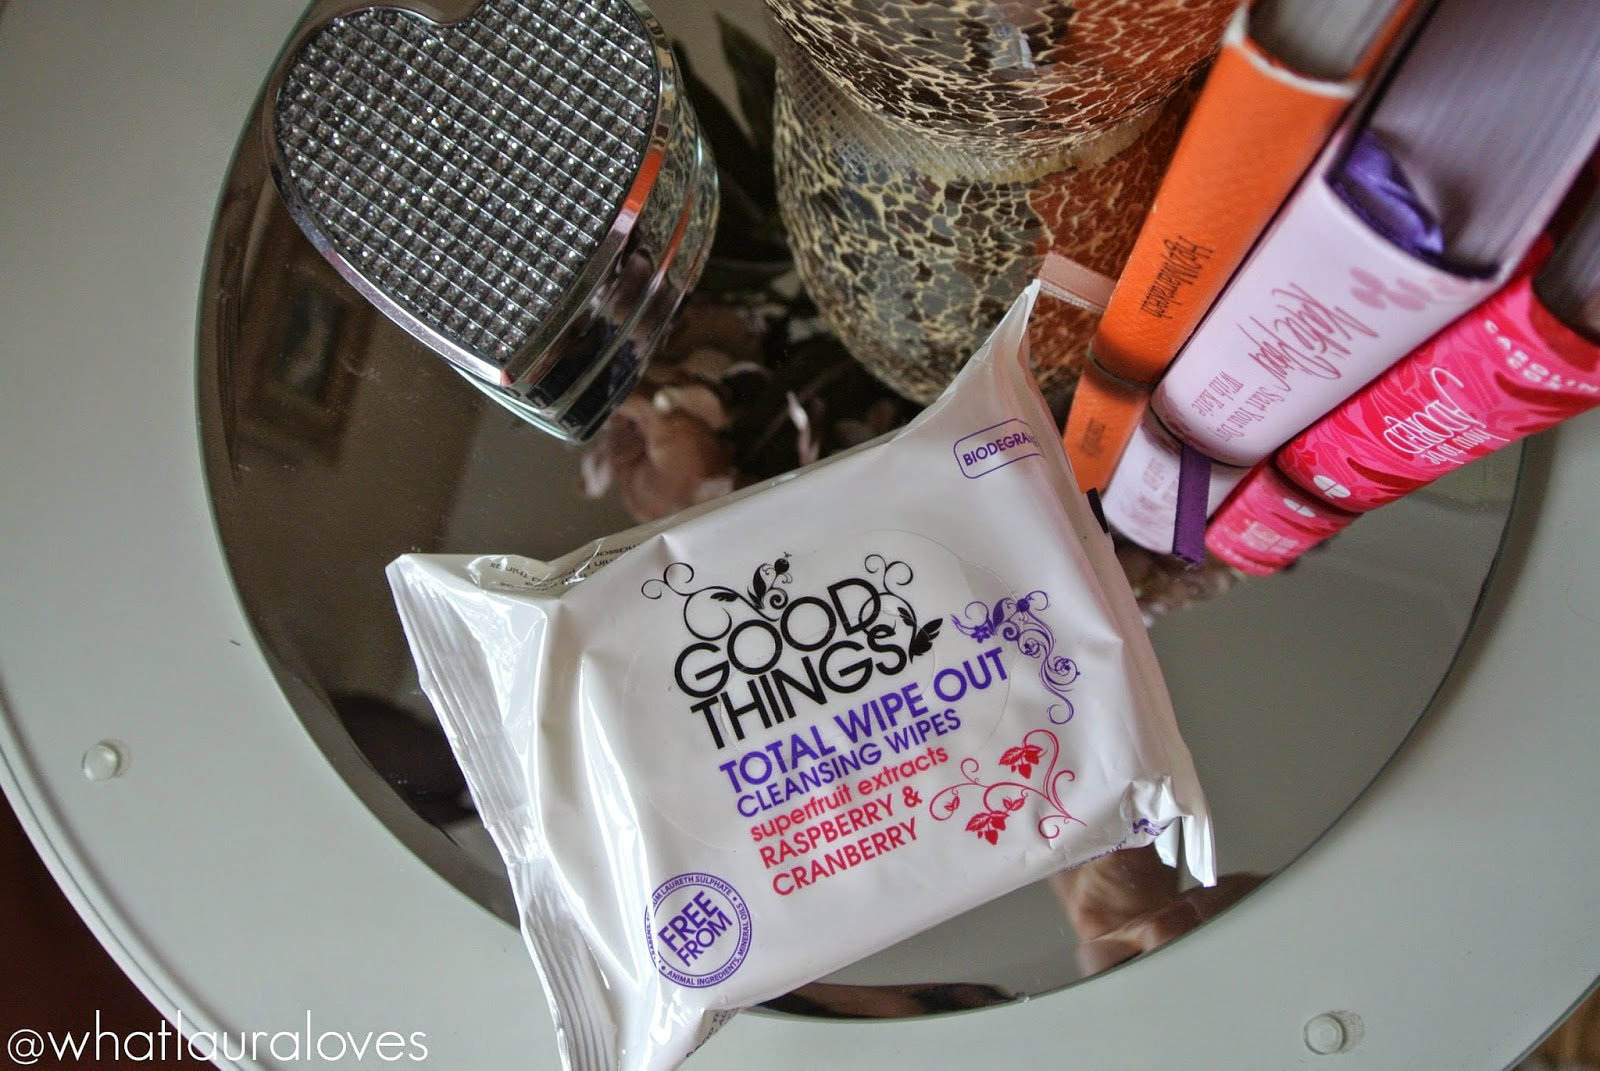 Good Things Total Wipe Out Cleansing Wipes Review